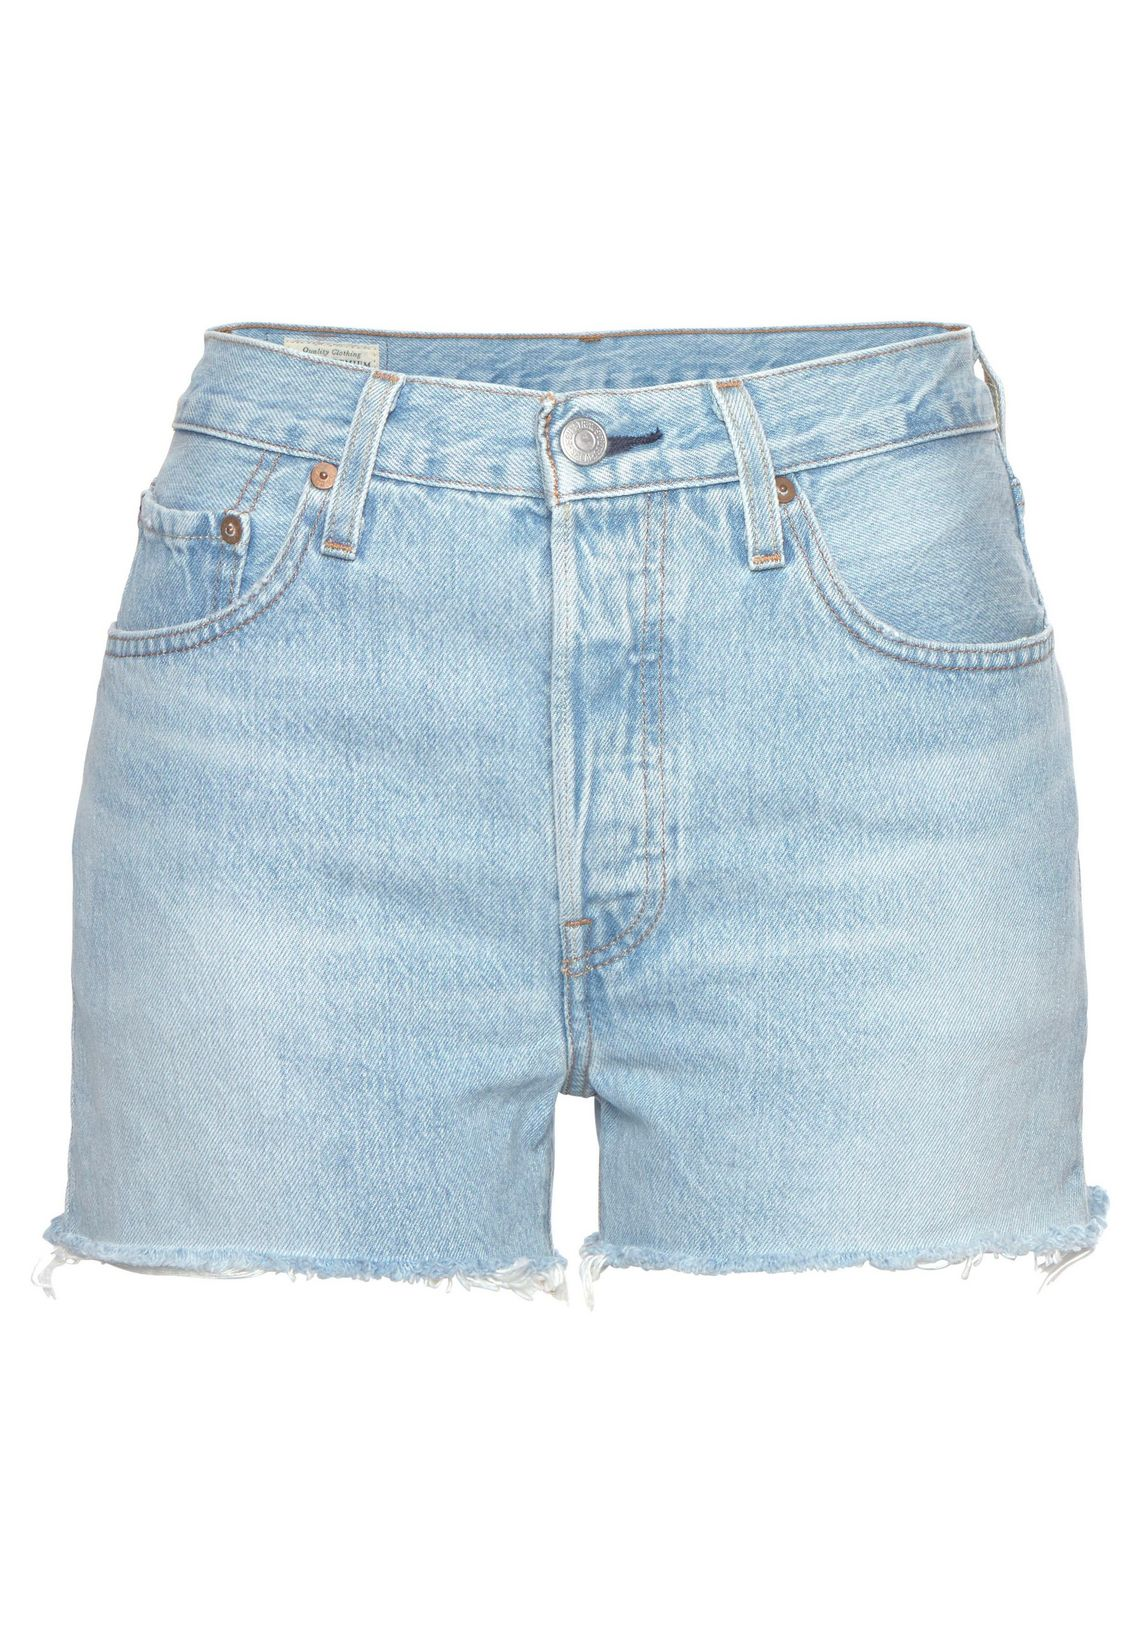 Levi's® Short 501 Highrise Online Bestellen Light-blue-bleached I6PGtLlm